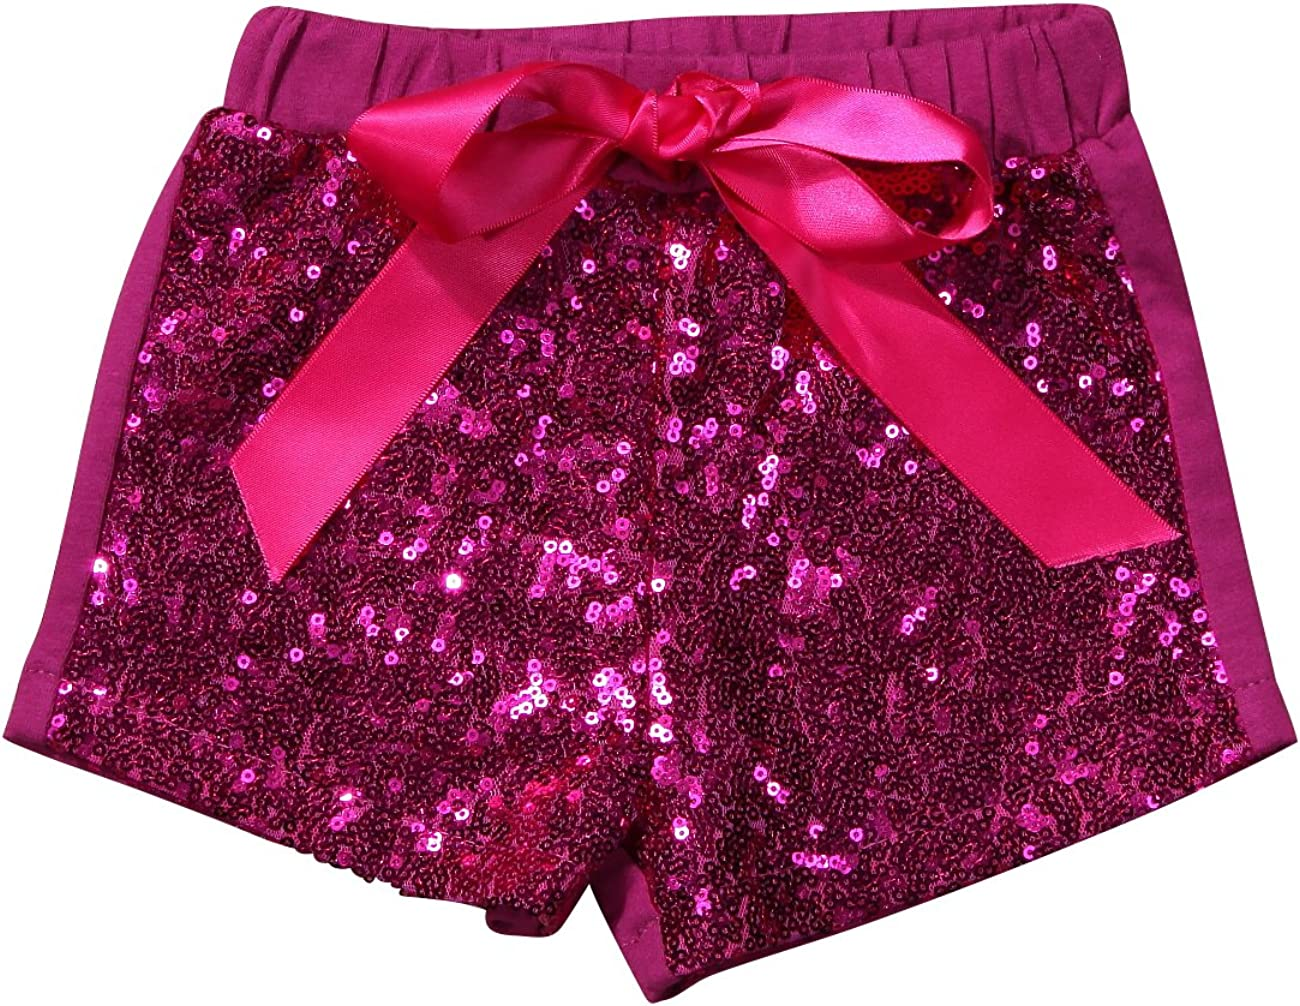 Viclearshop 1-5 Year Baby Girls Shorts Toddlers Short Sequin Pants with Bow